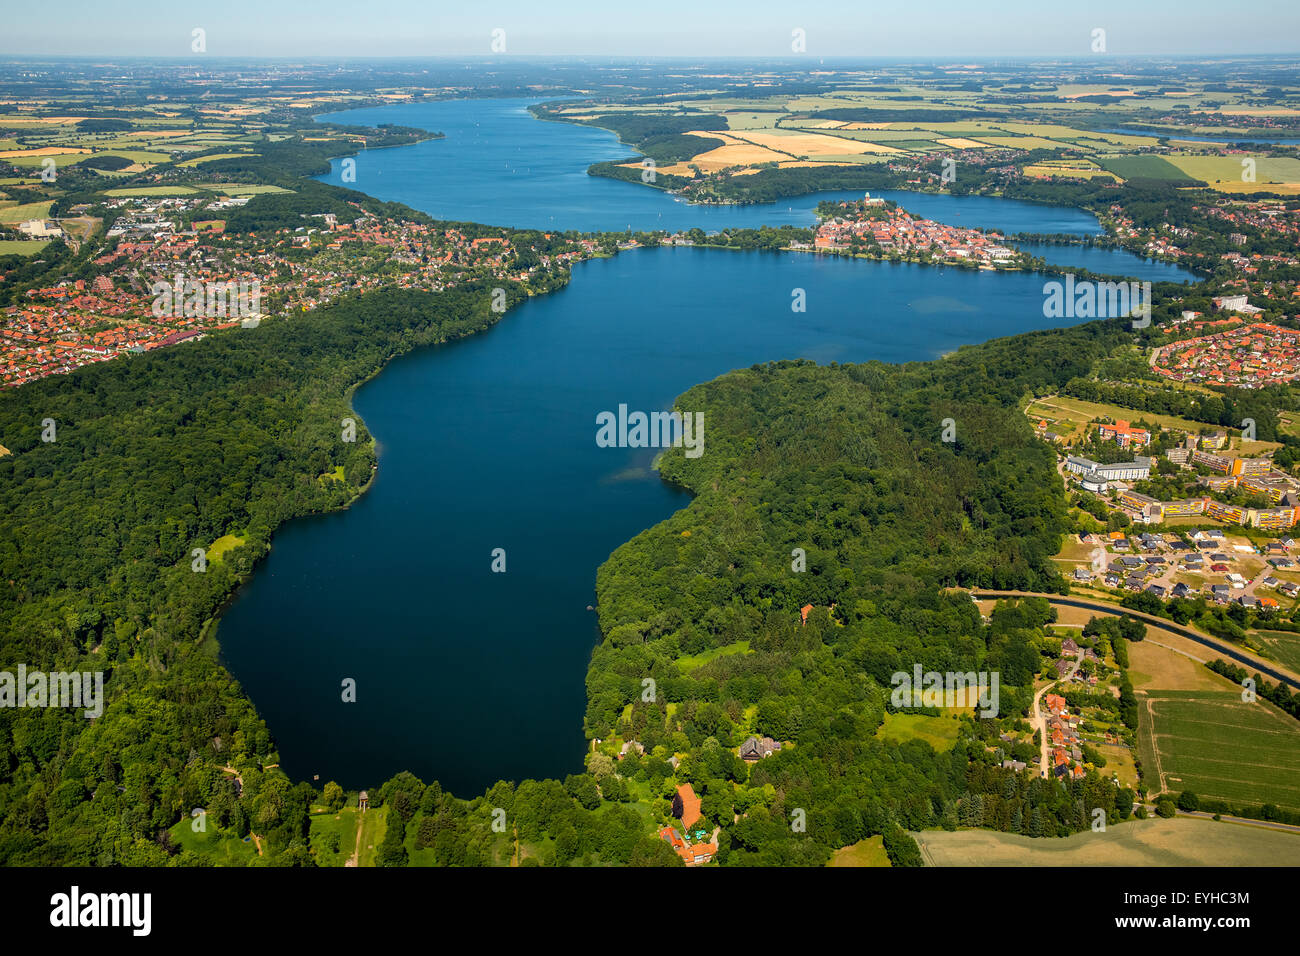 Ratzeburger See lake, Domsee lake, Küchensee lake, Bay of